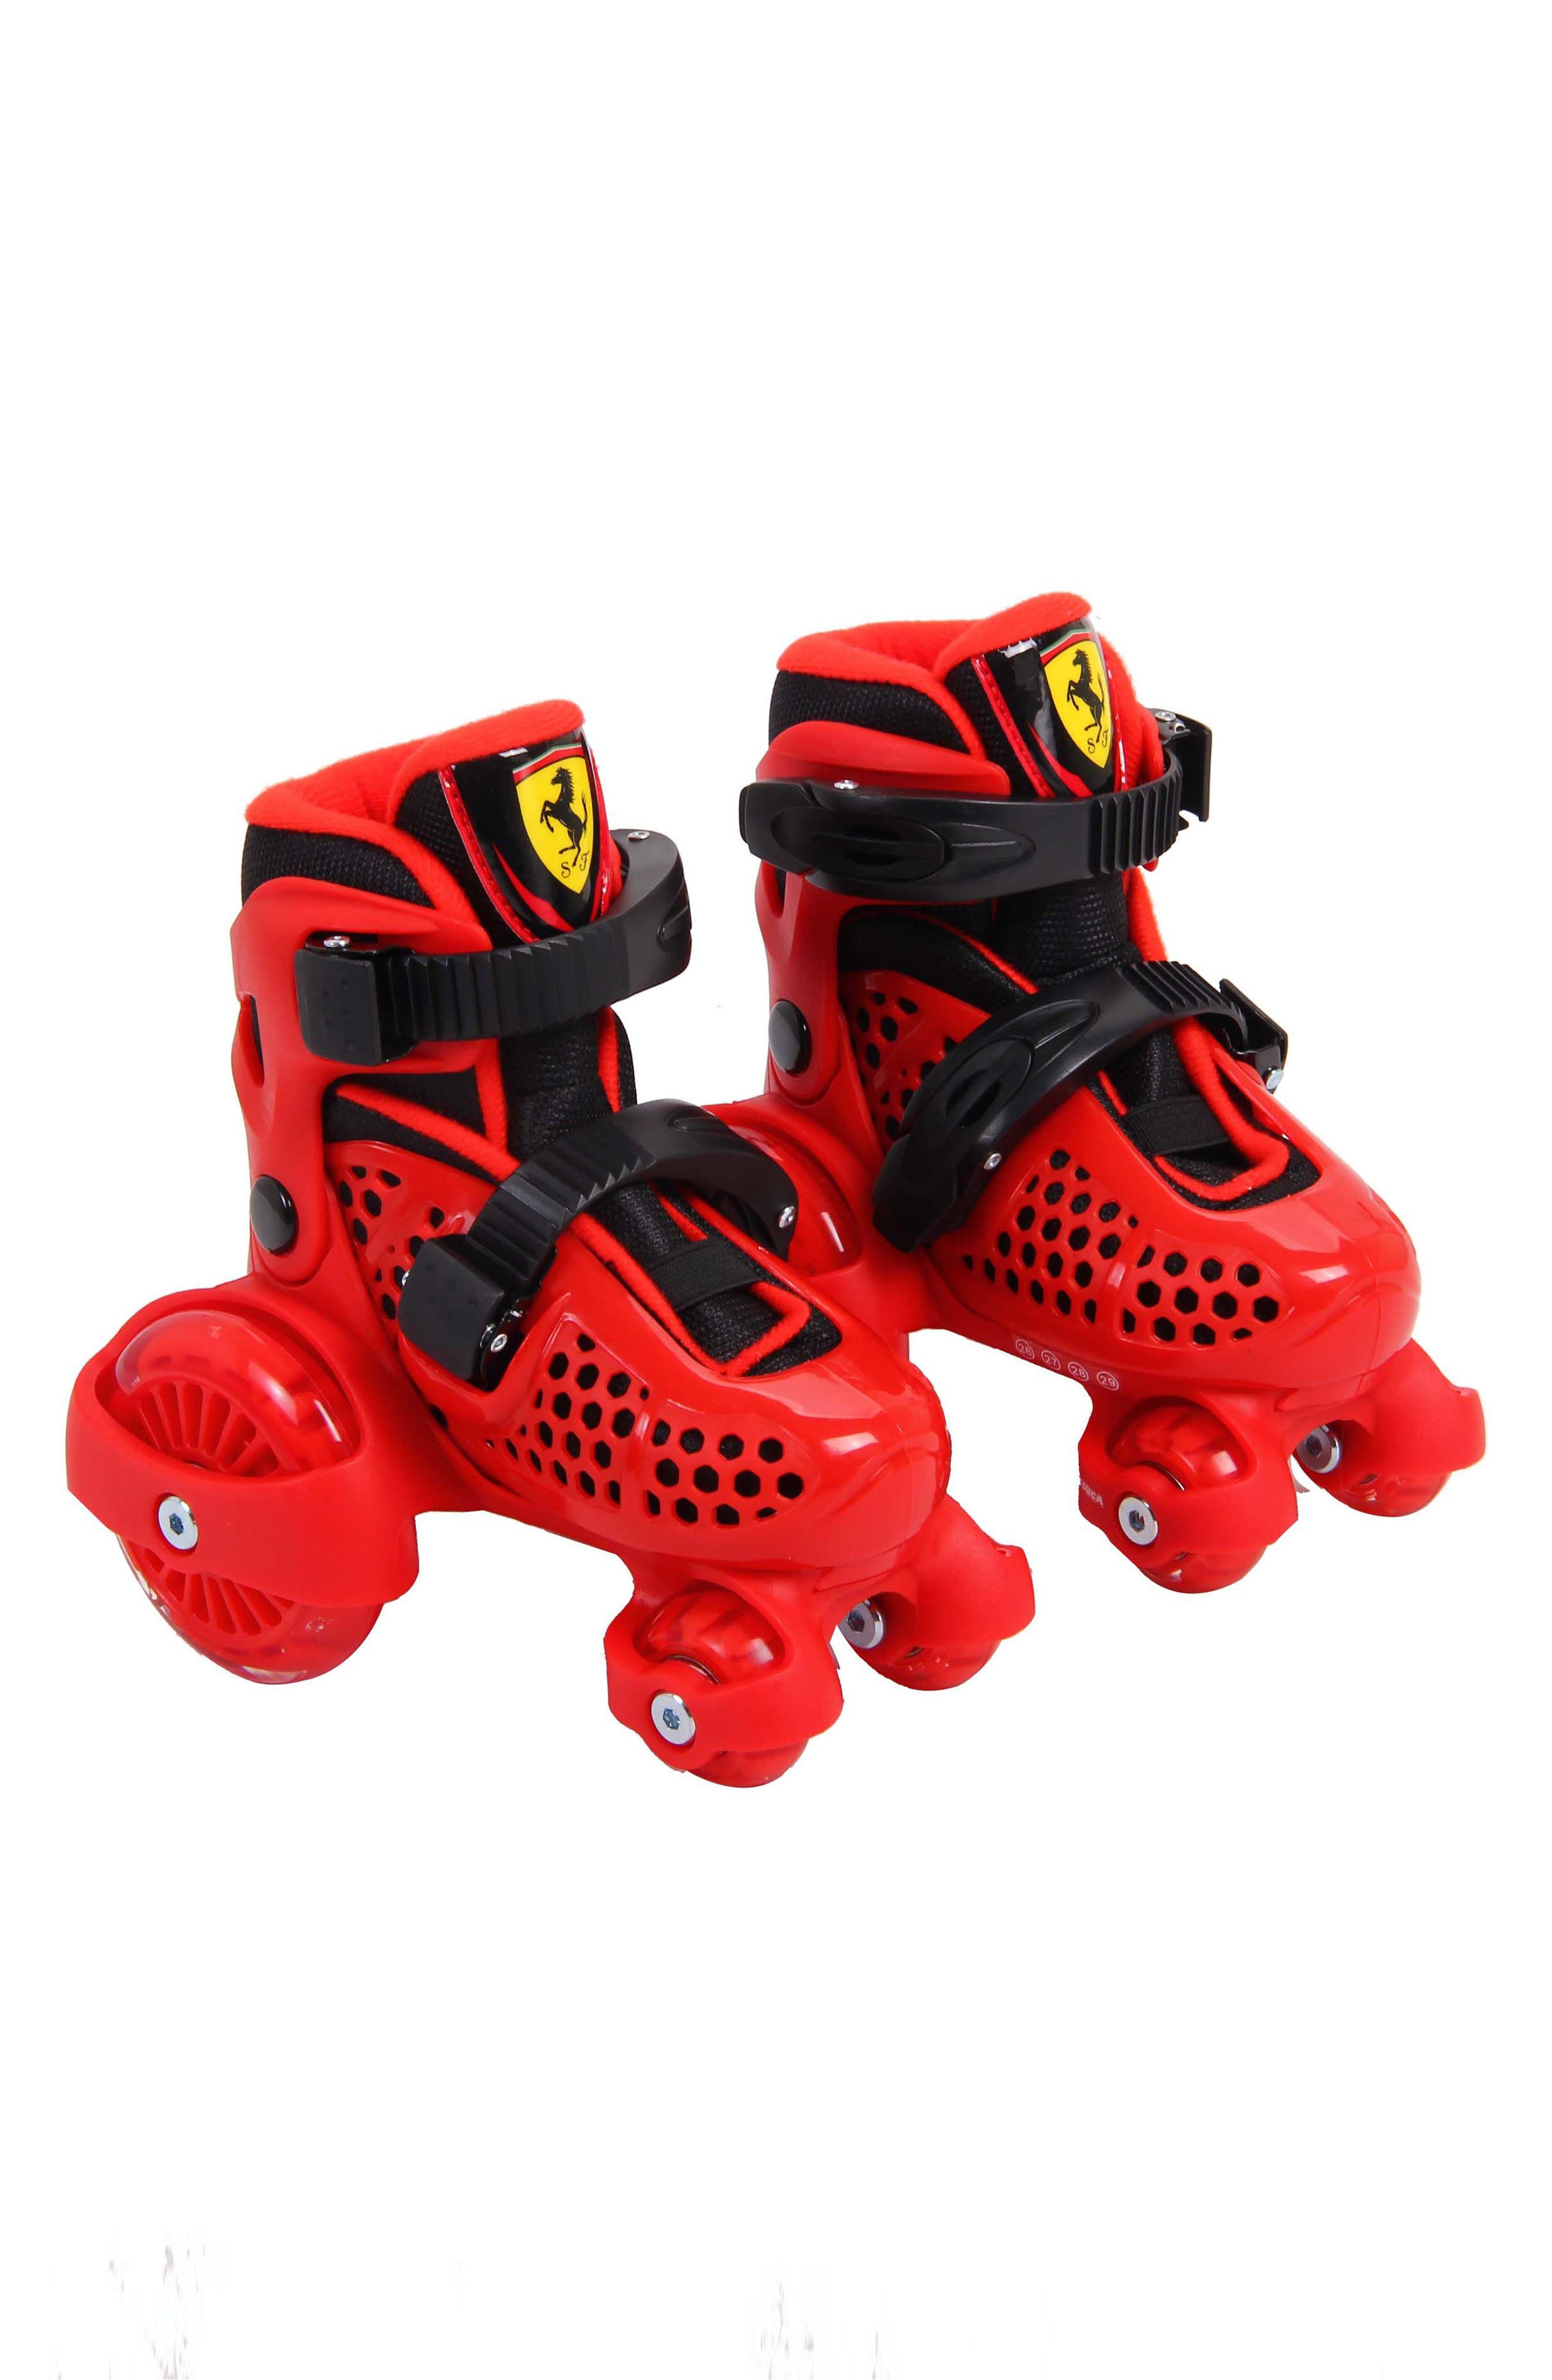 My First Skate Rollerskate & Protective Gear Set,                             Main thumbnail 1, color,                             Red